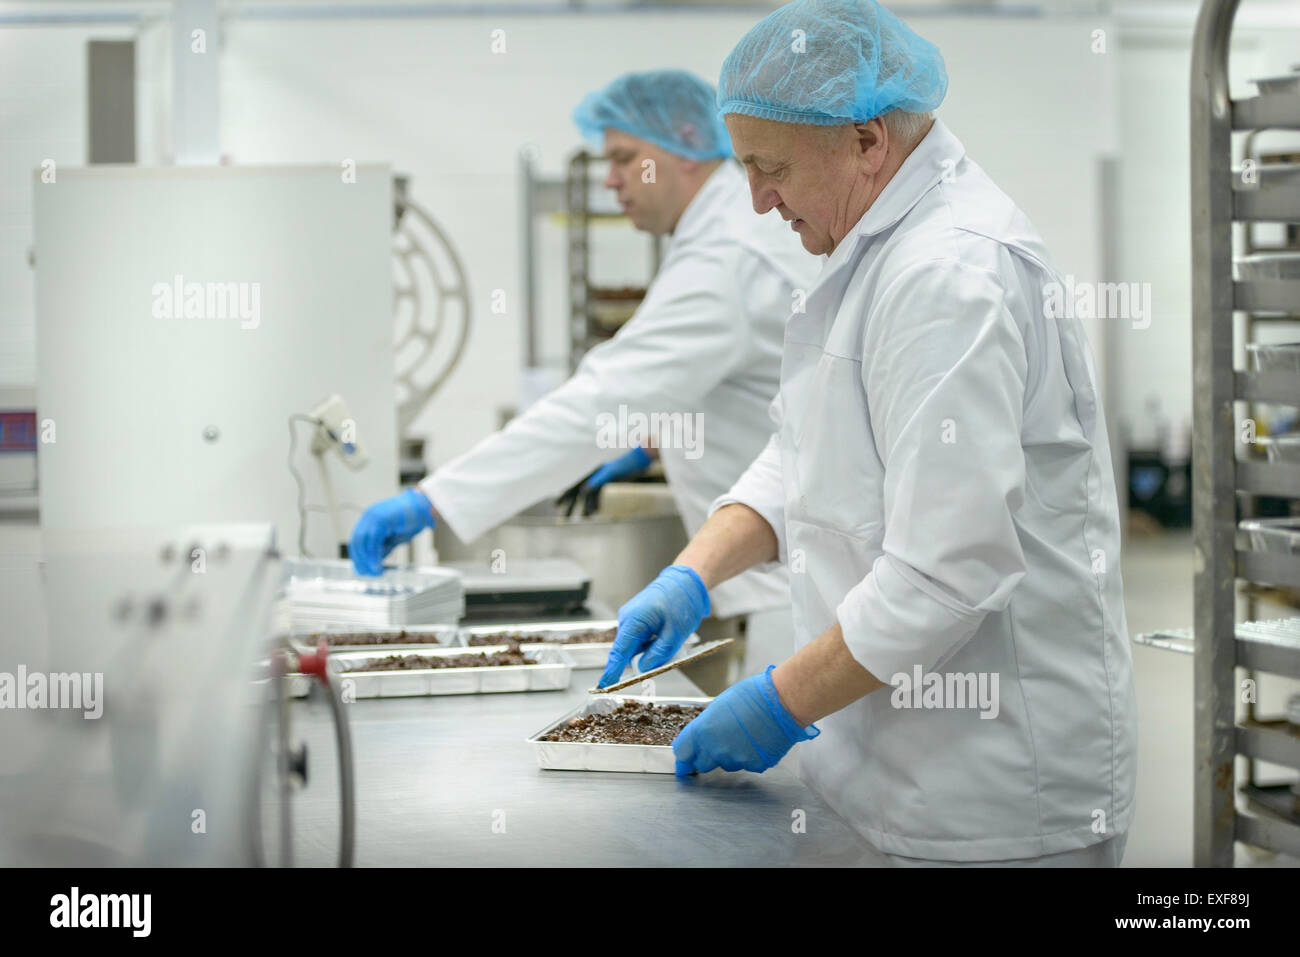 Bakers prepare trays of product in cake factory - Stock Image